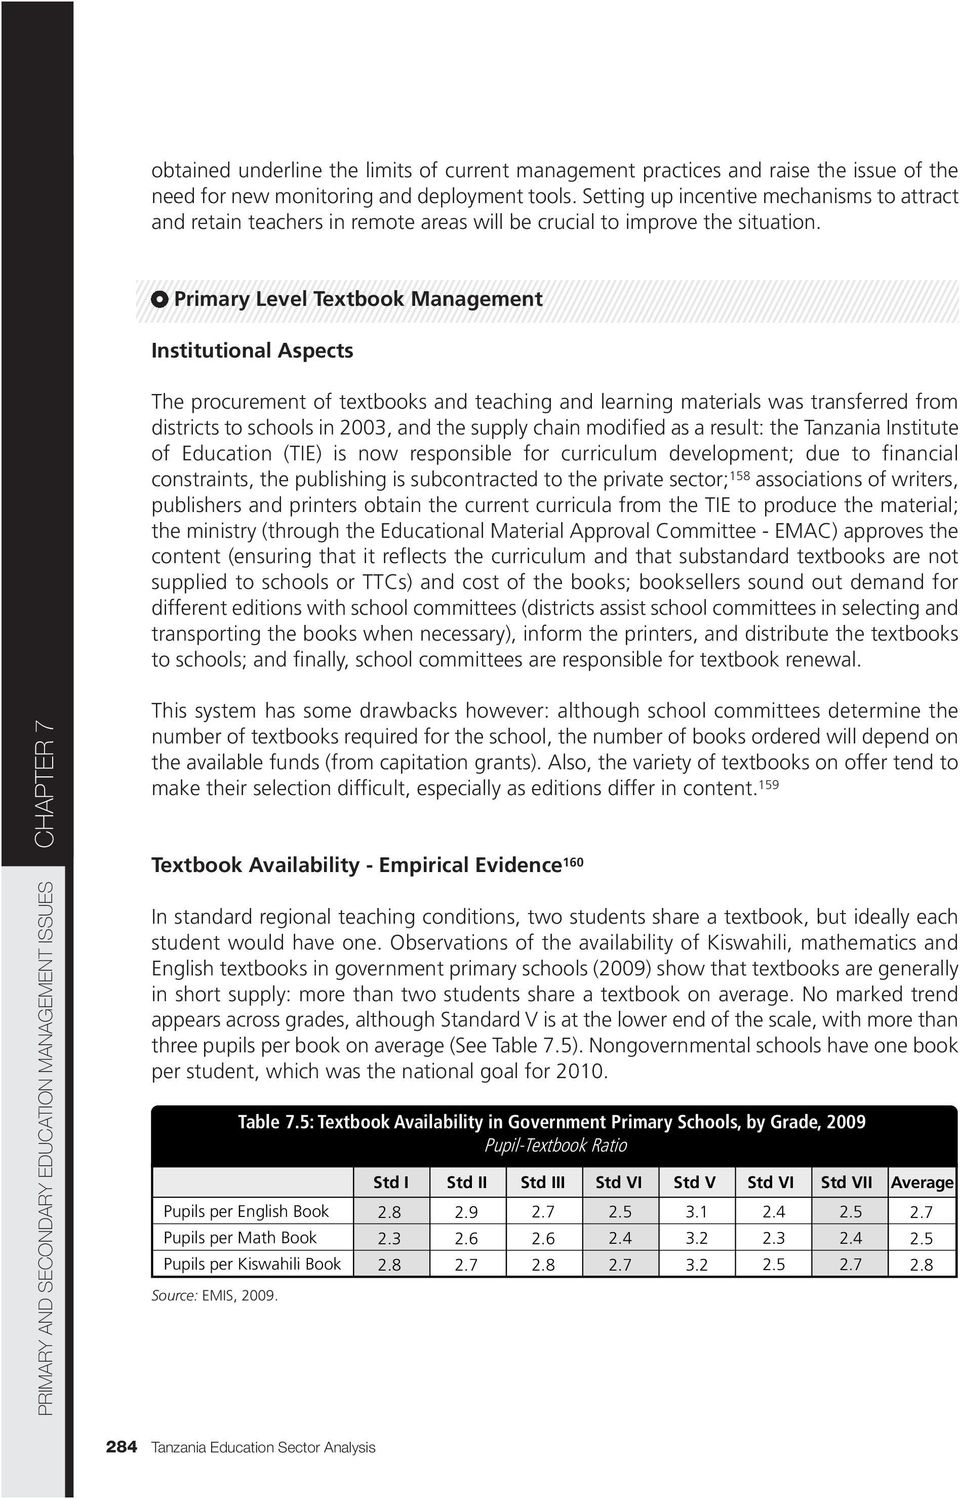 Primary Level Textbook Management Institutional Aspects The procurement of textbooks and teaching and learning materials was transferred from districts to schools in 2003, and the supply chain